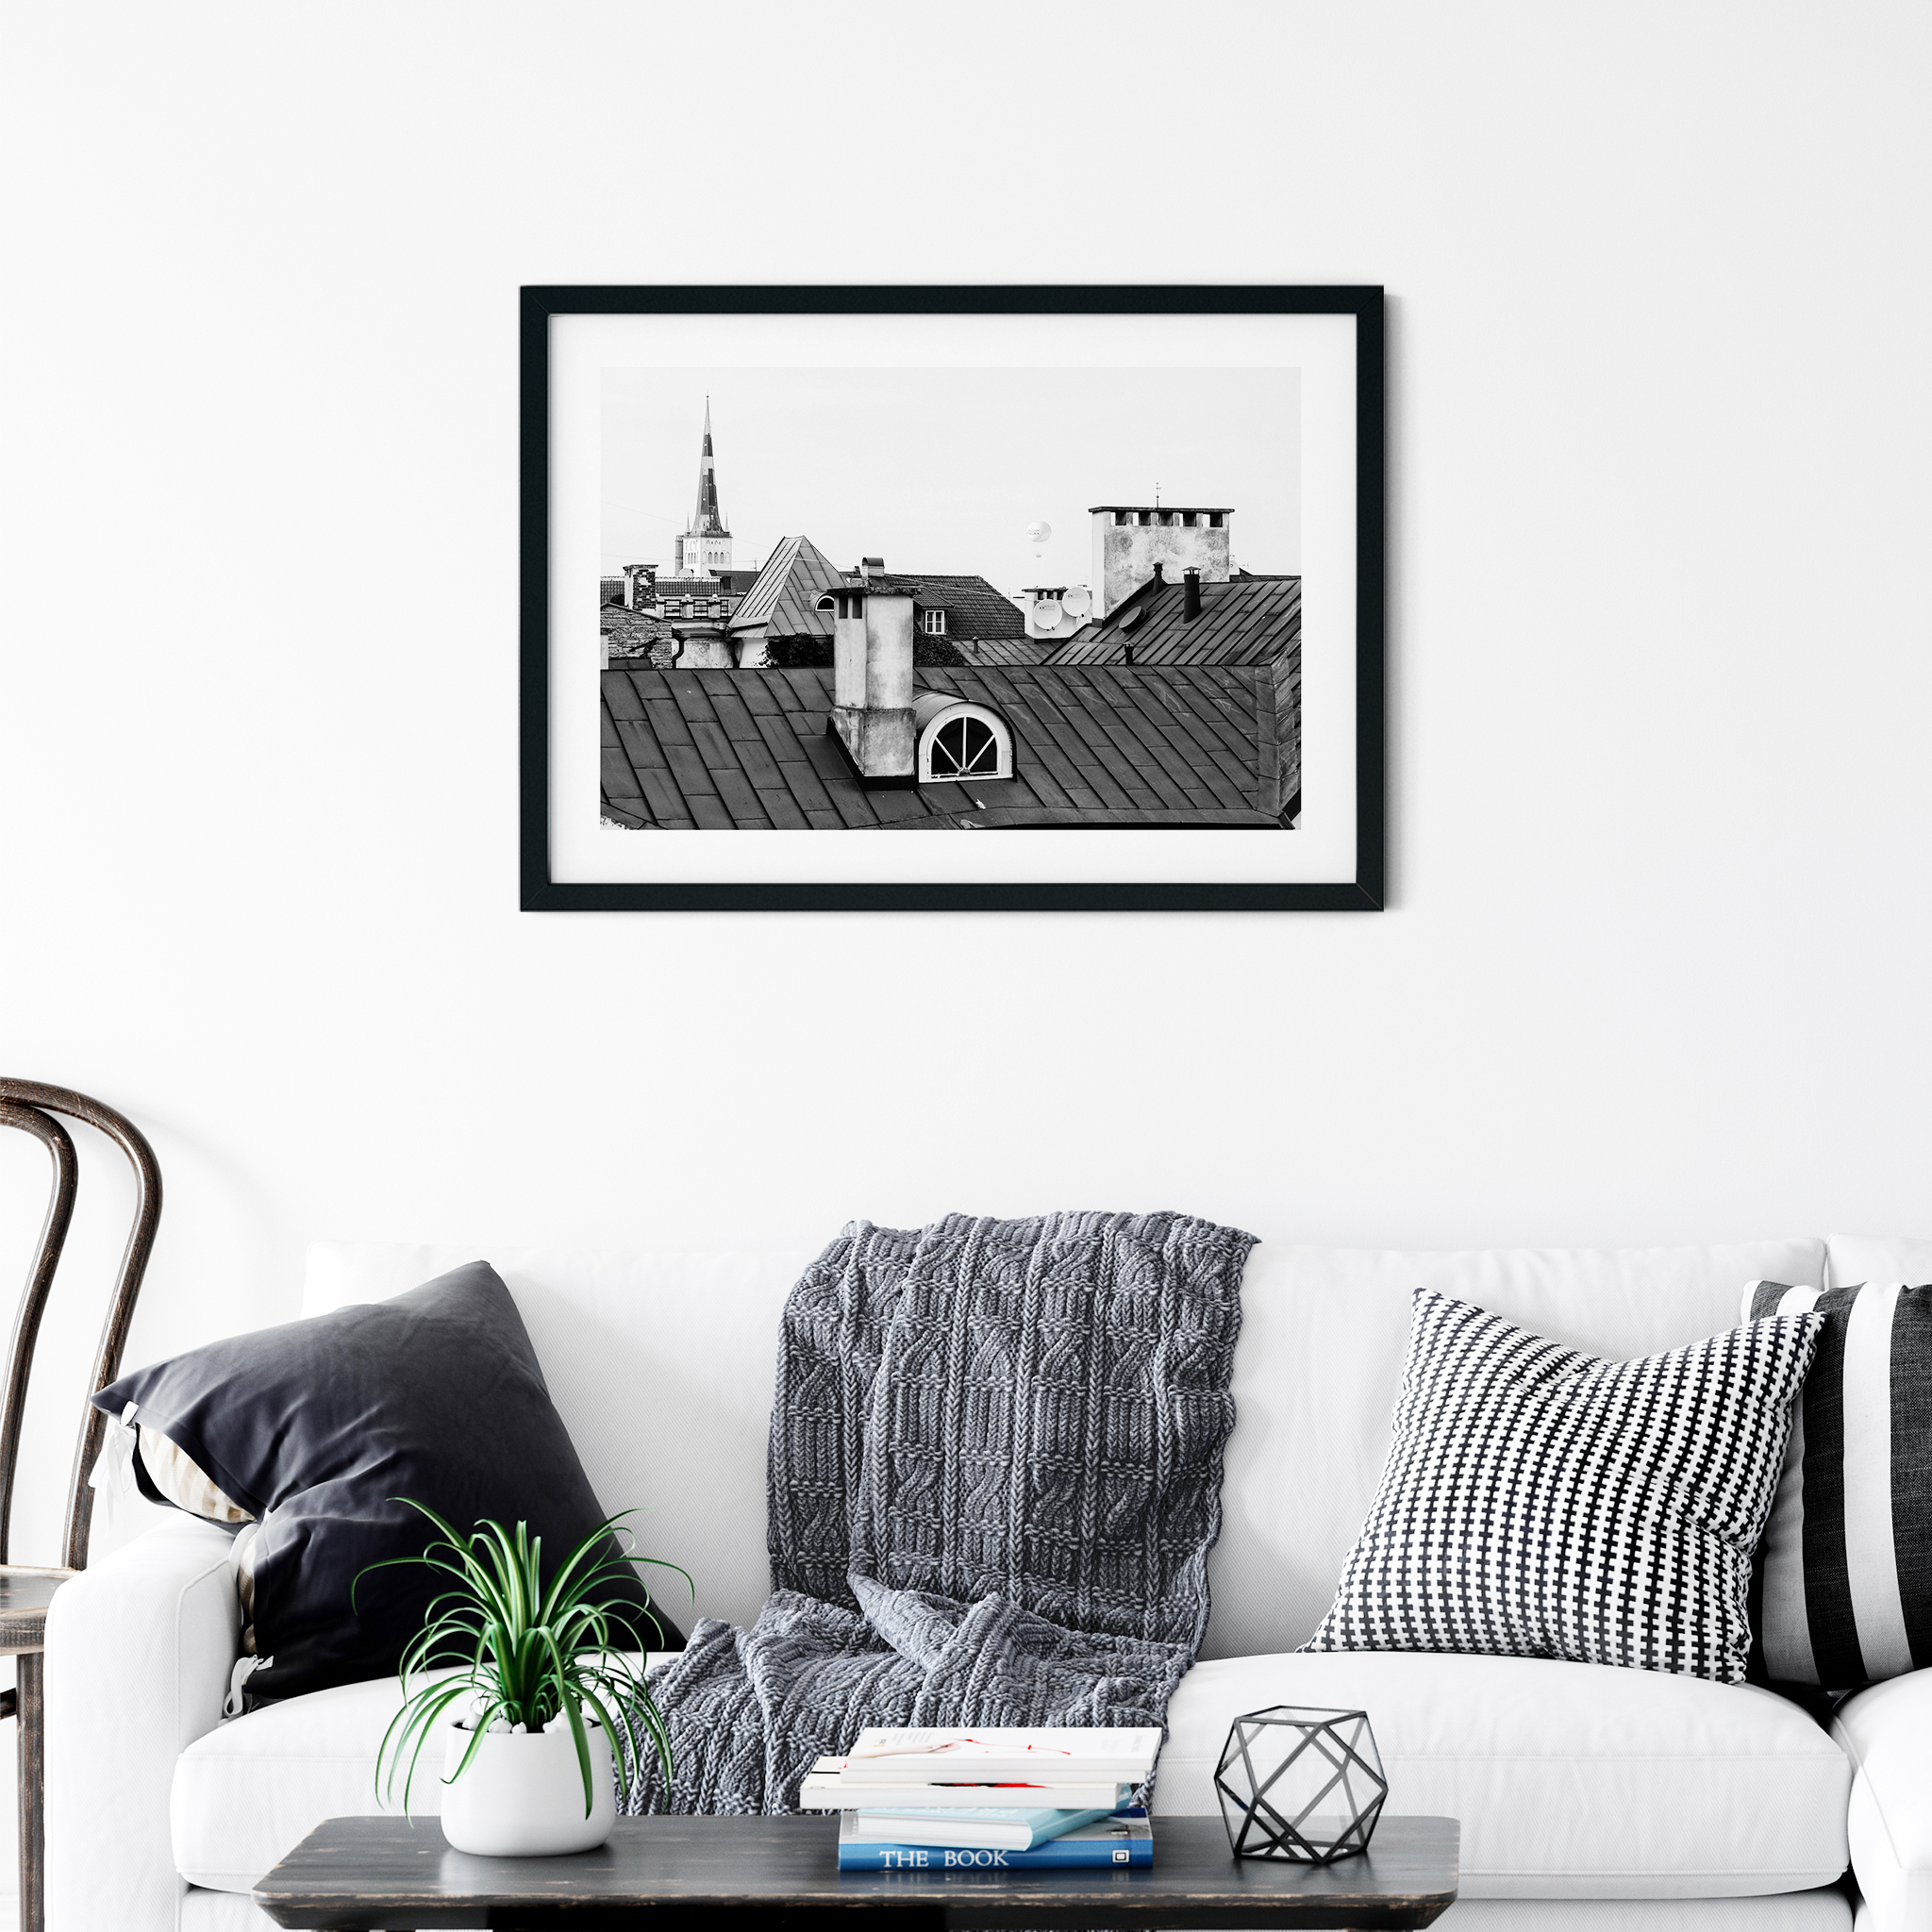 Tallinn Roofs - black and white photography print in the black frame on the wall in interior